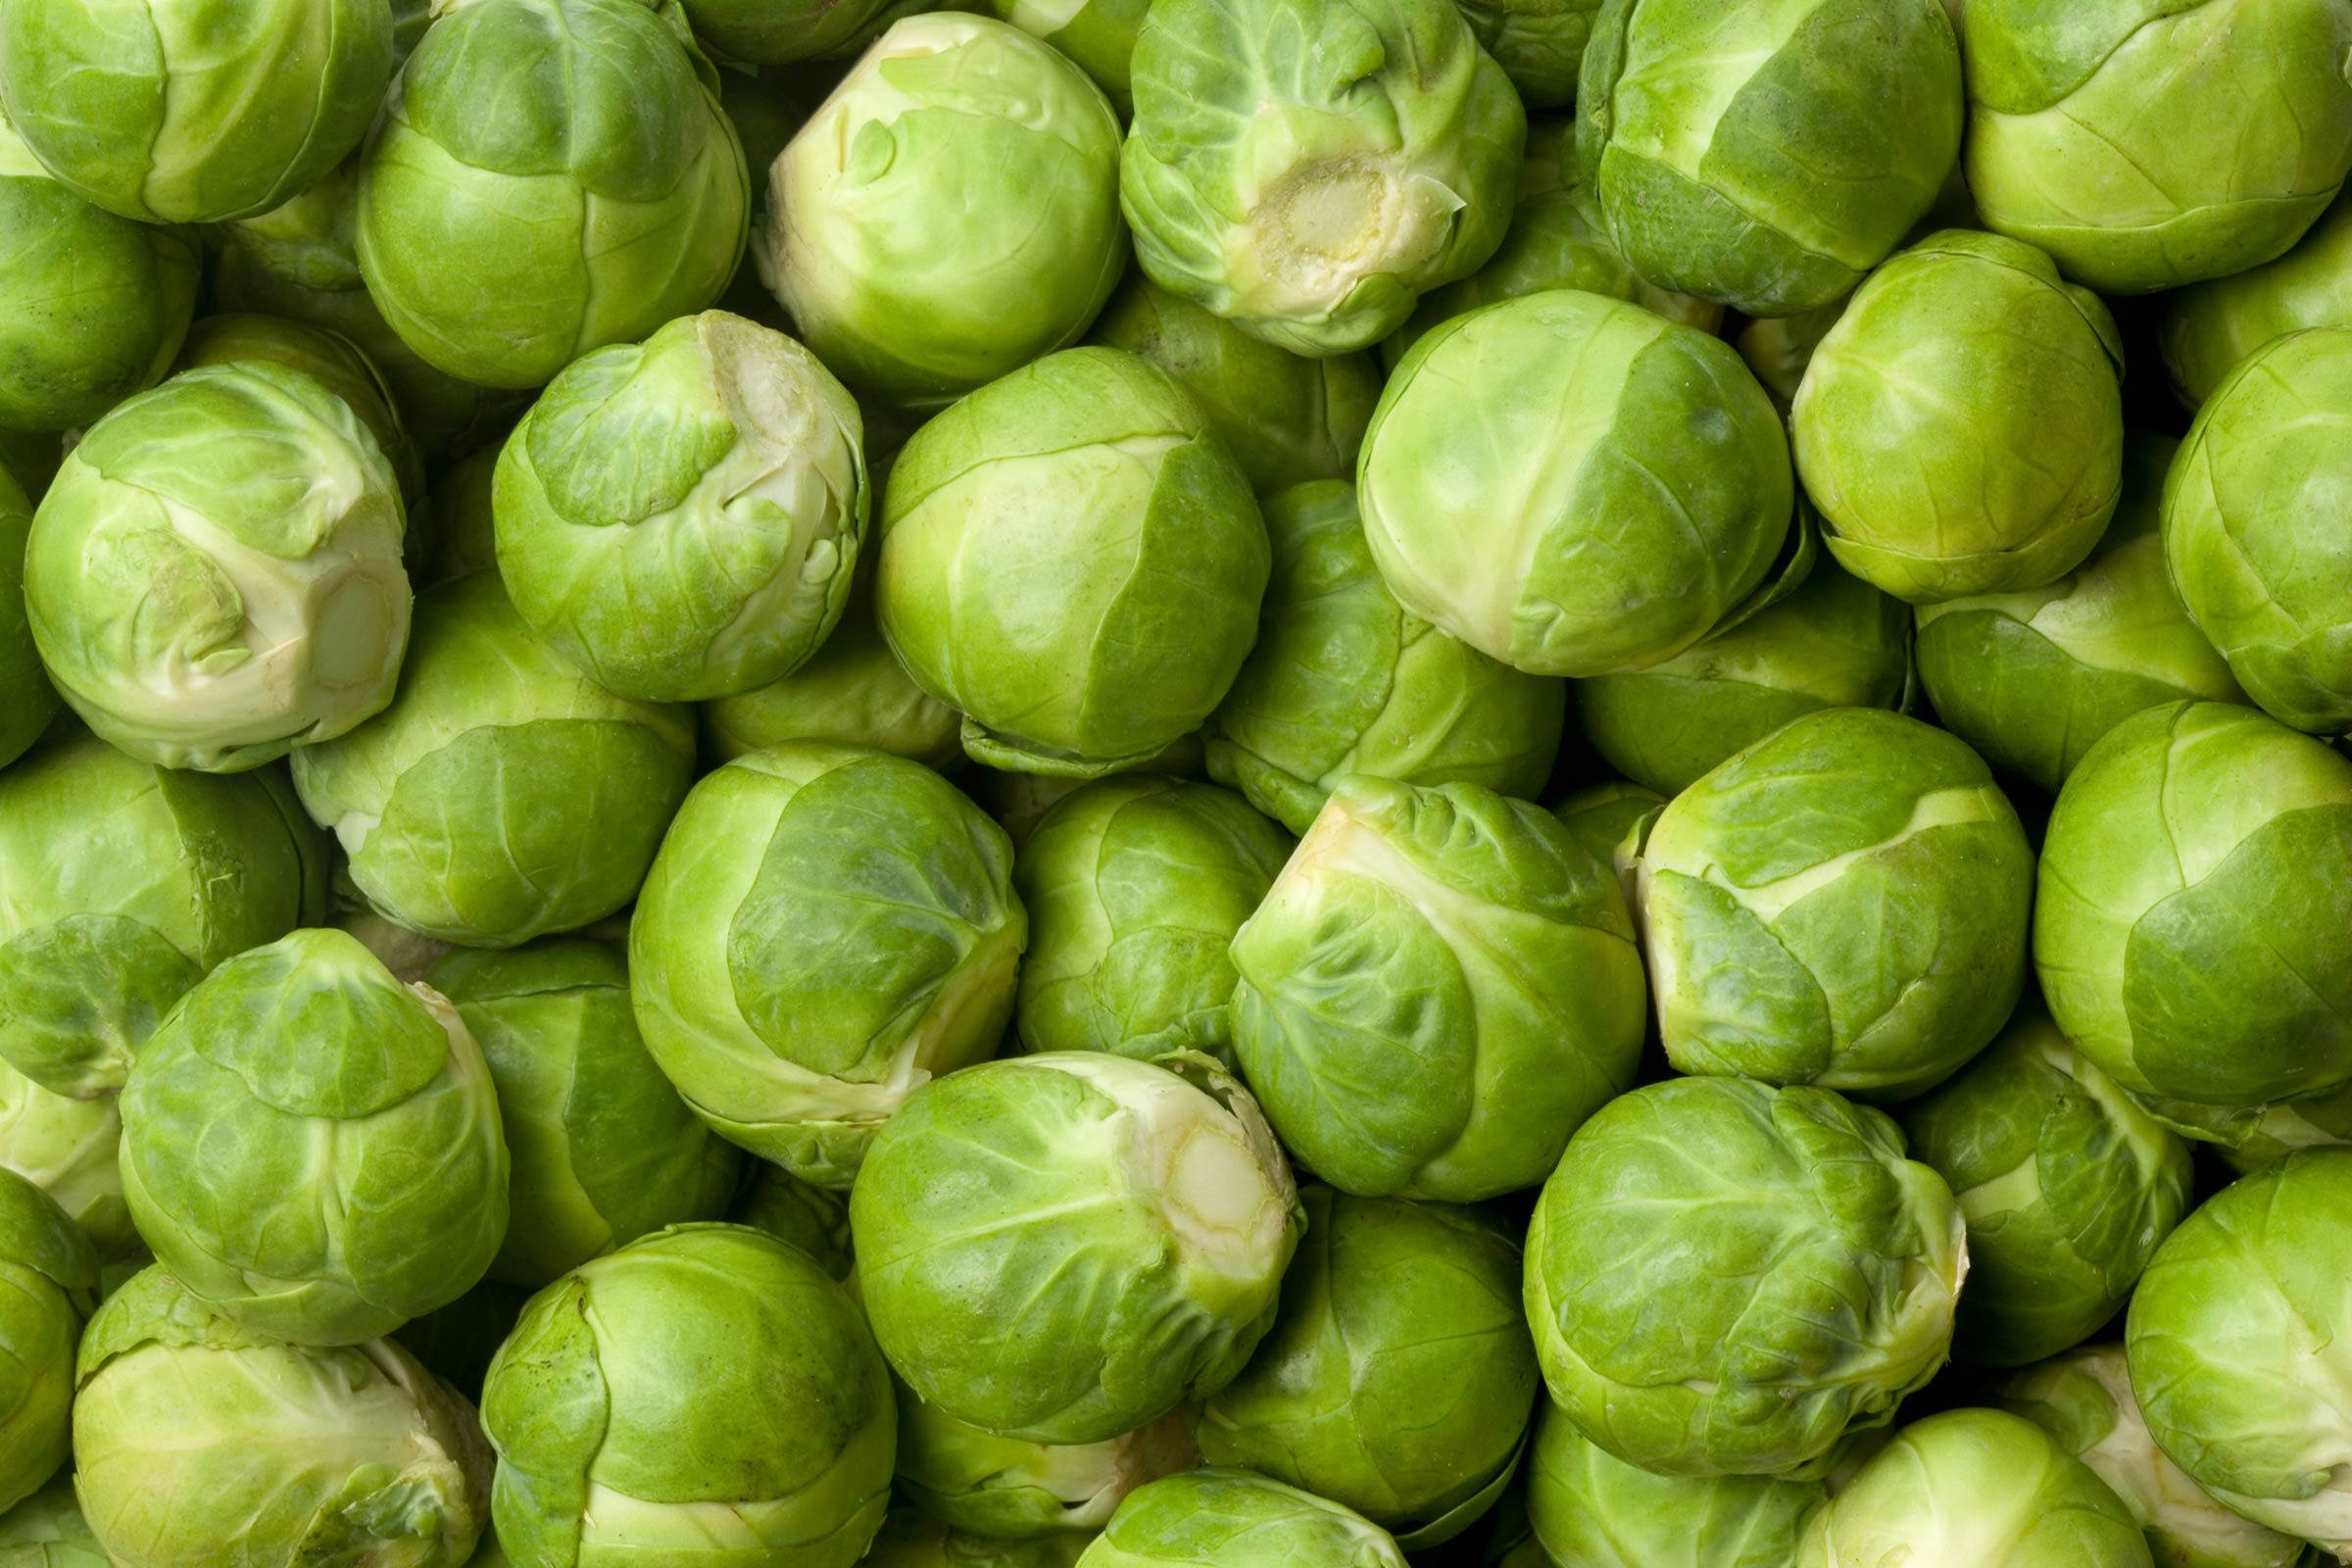 01_Sprouts_Surprising_Health_benefits_Gardening_